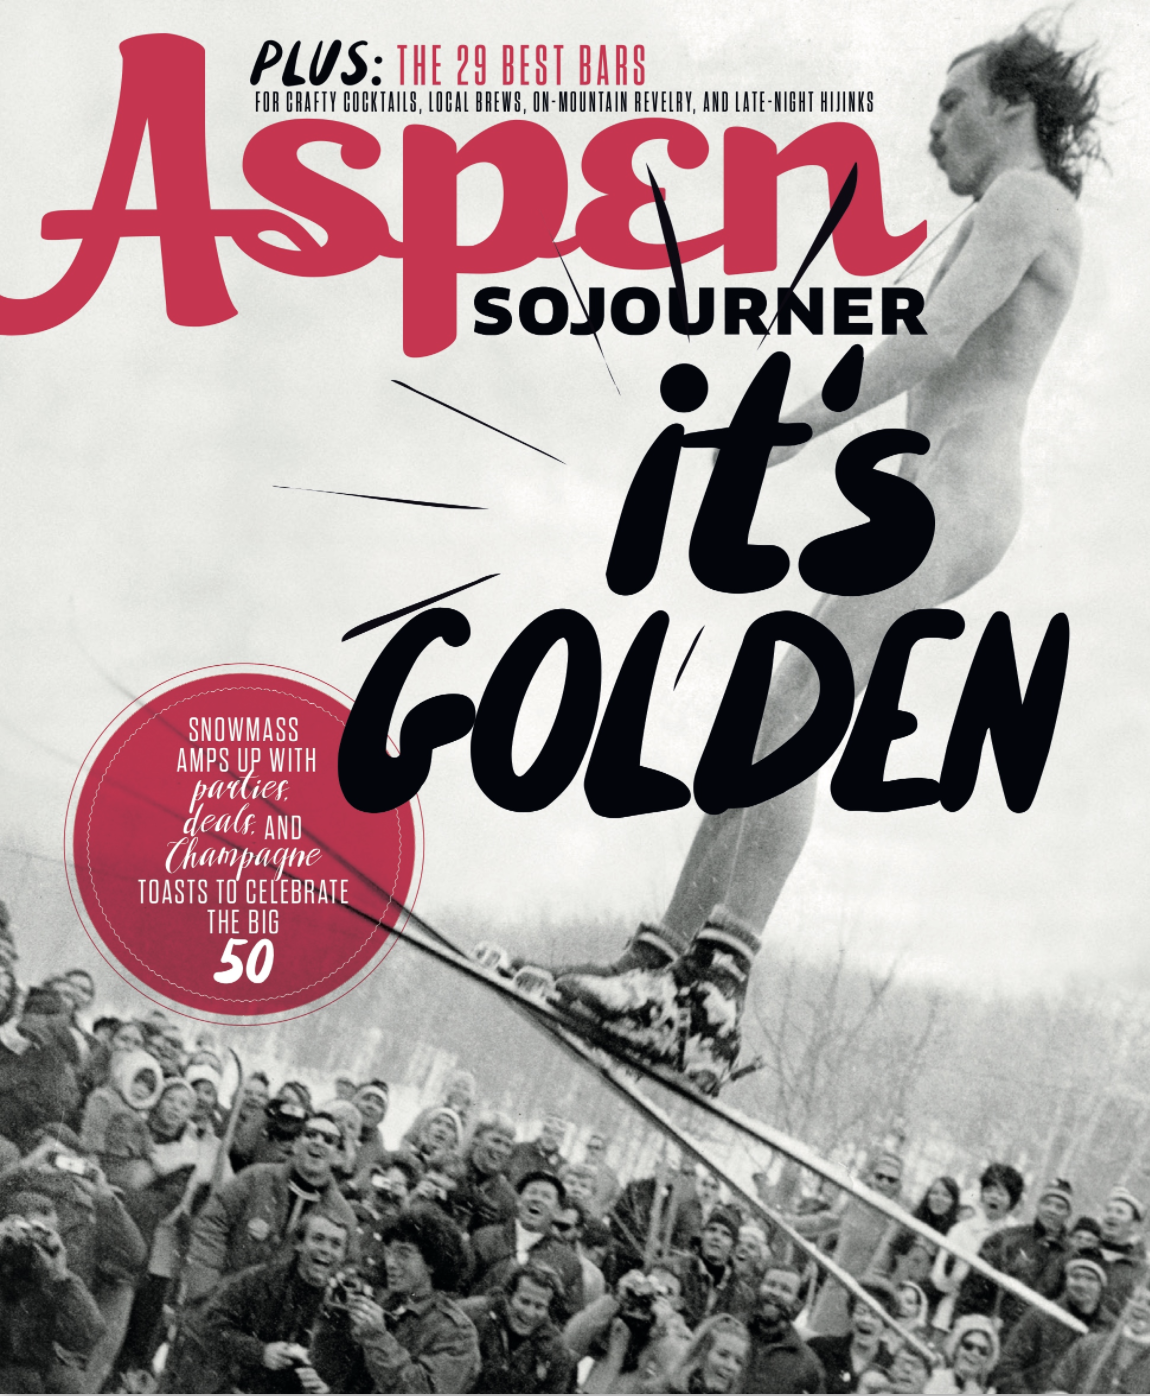 Freelance work: Aspen Sojourner Magazine Holiday Issue 2017/18